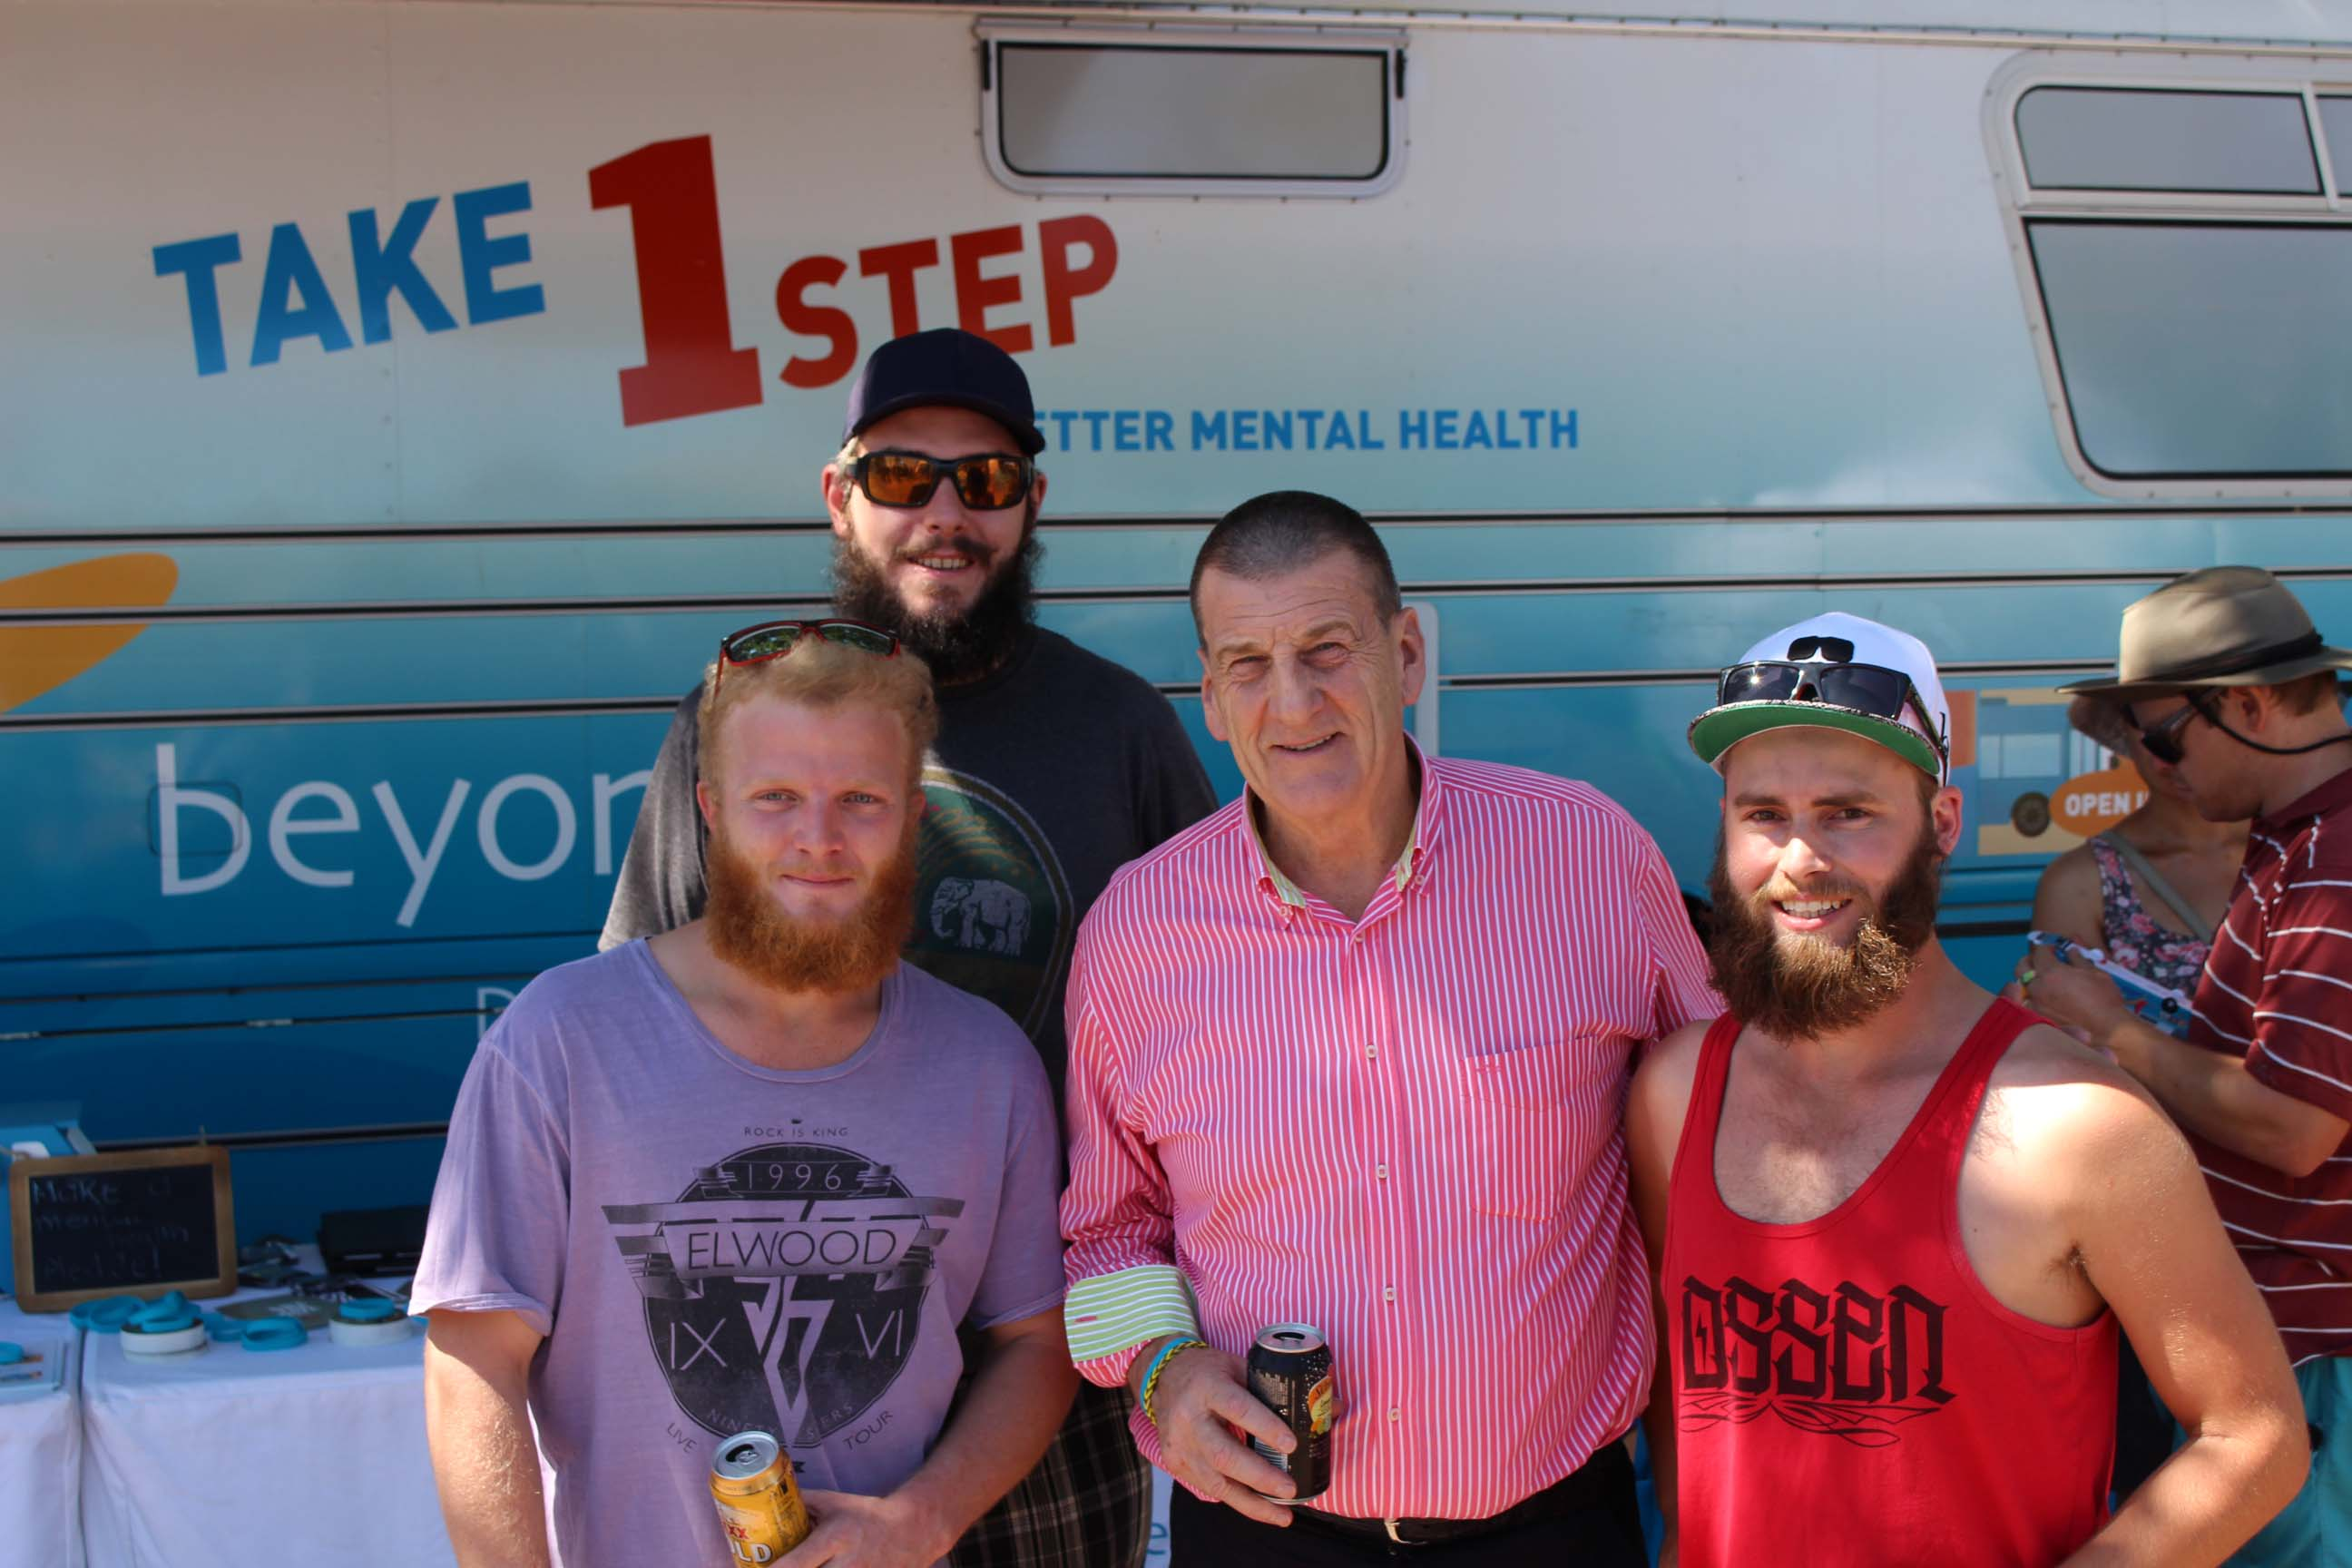 Beyond Blue Chairman Jeff Kennett met some of Darwin's Bearded Brotherz at the Beer Can Regatta. A group of 50 men are growing beards for 12 month to raise money for Beyond Blue.